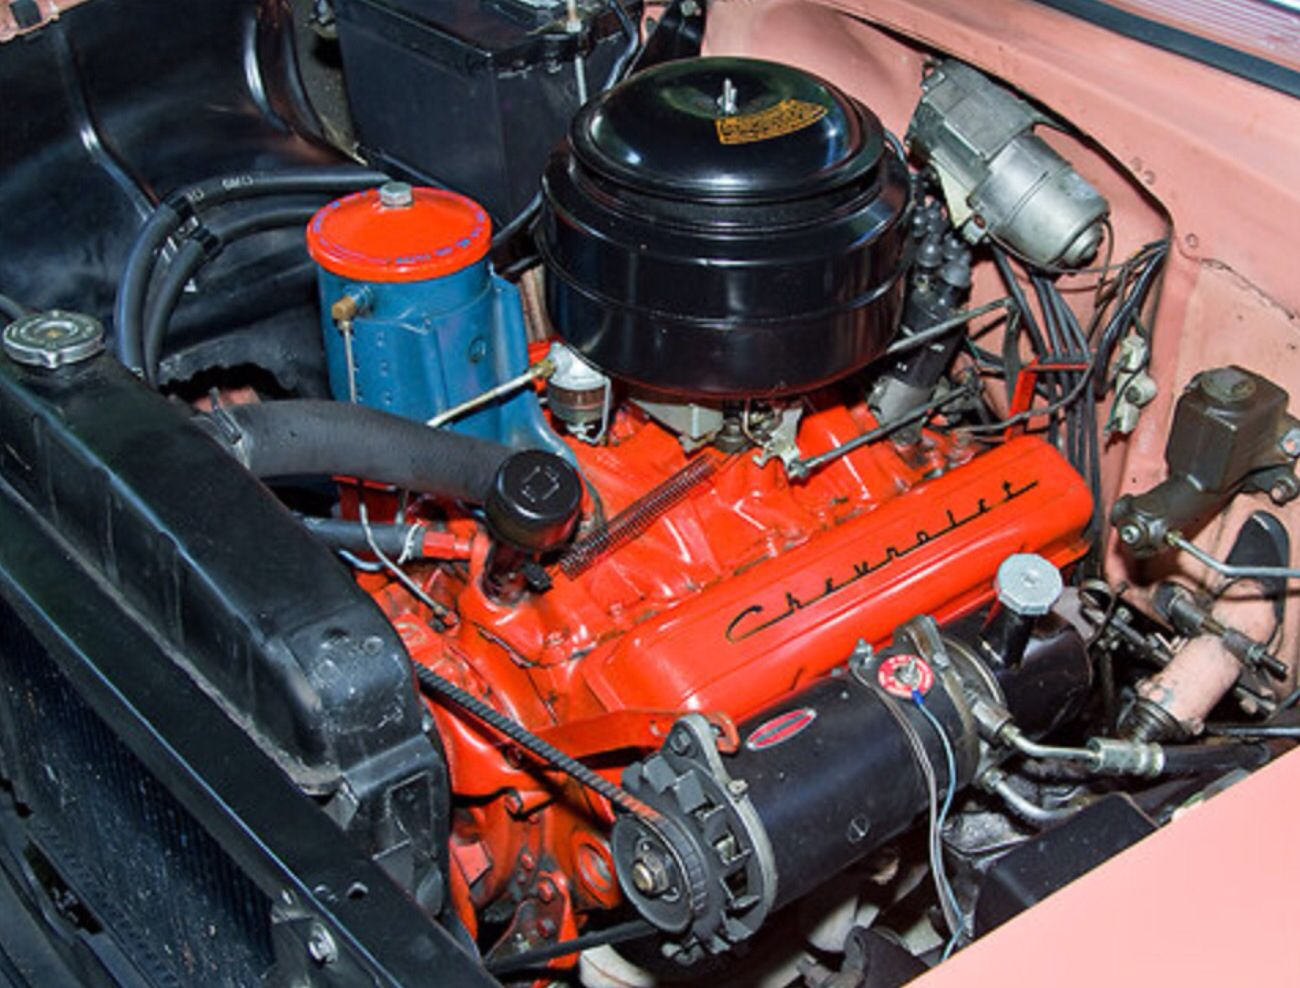 1955 Chevy , 265...the little engine that still can! Power ...